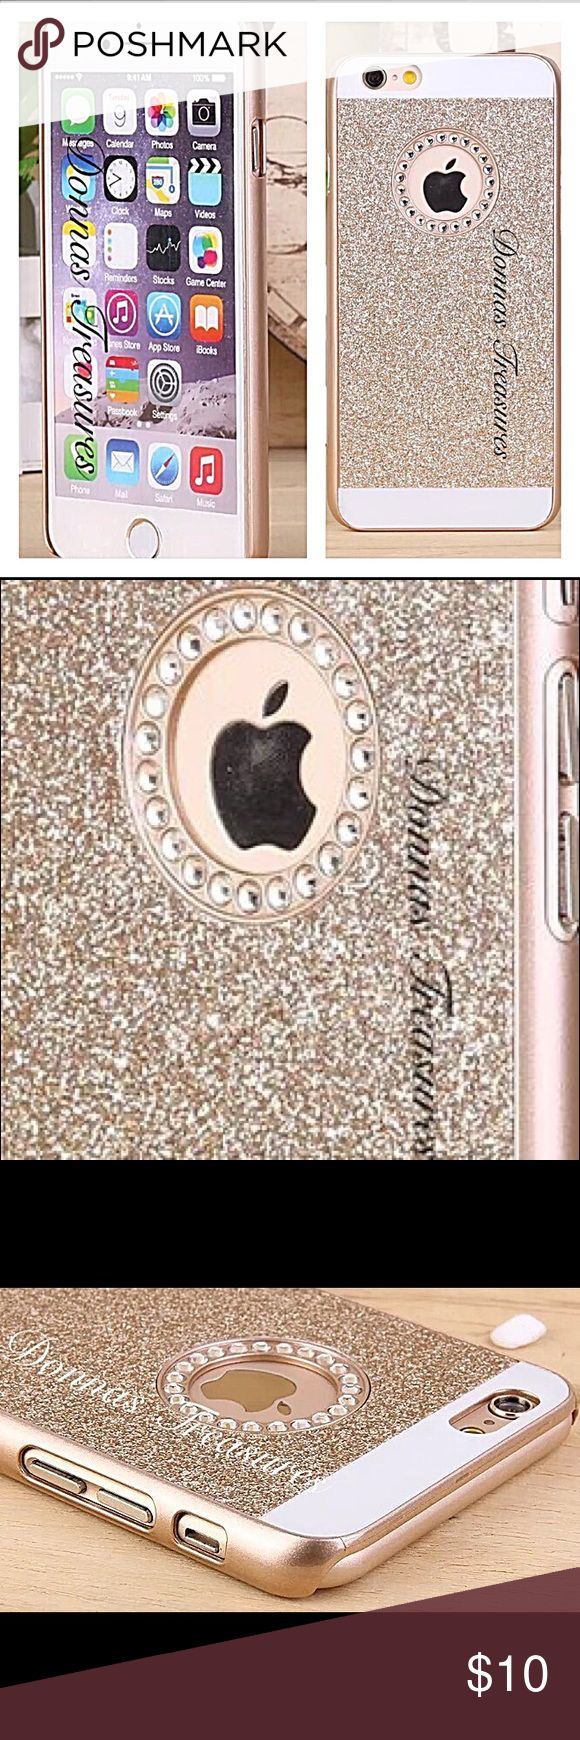 ❤️Crystal Rhinestone & Gold iPhone 6S+ This beautiful case is made of a double layer of high quality hard Polycarbonate PC.   It snaps on & off. Please note this is to cover the back & sides as well as provide a shockproof buffer if it falls face down. It does not have a plastic covering for the front.  The precisely cut openings allow full access to all the functions of your phone.  #0873/3 Accessories Phone Cases